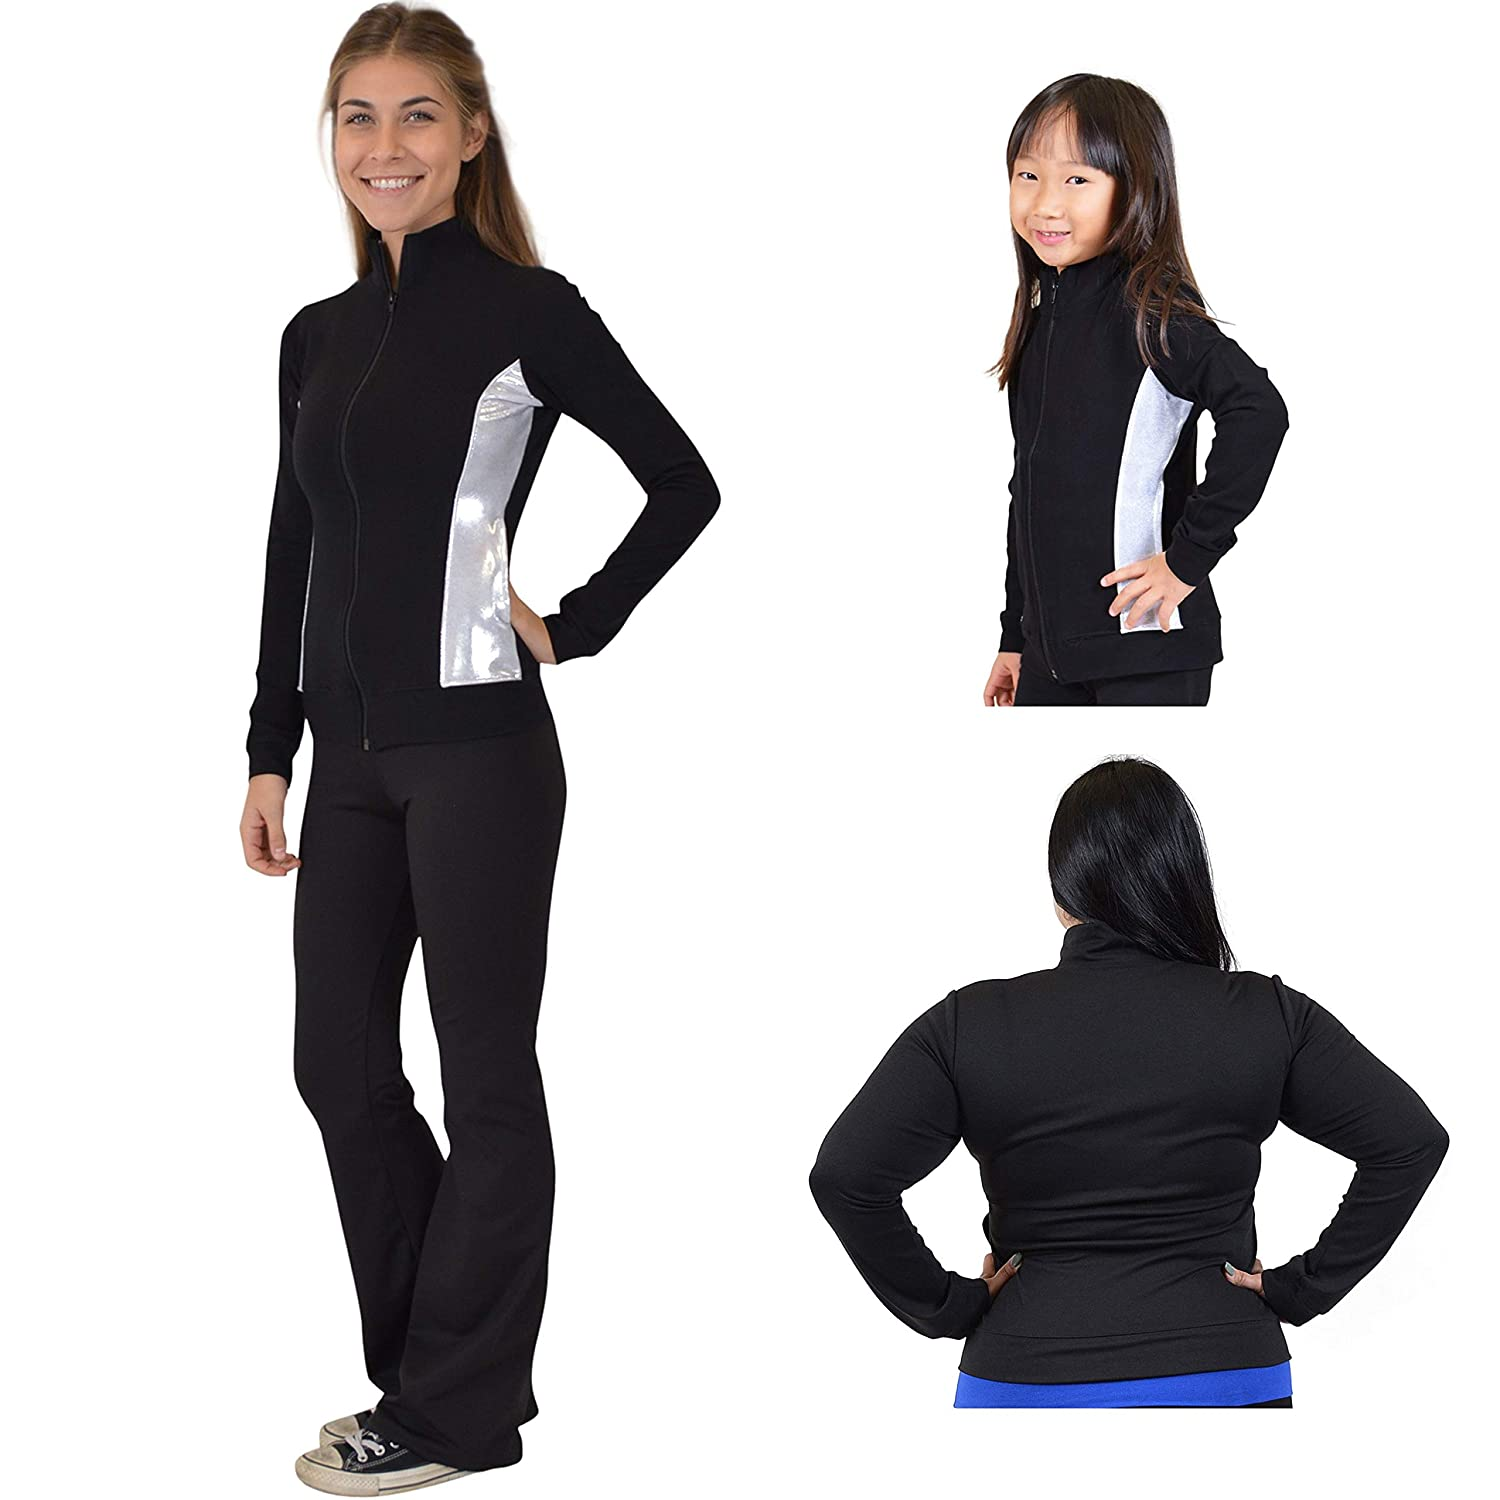 Stretch is Comfort Girl's and Women's Dance Cheer Cotton Warm Up Jacket J3032CHCTJCKT-$P